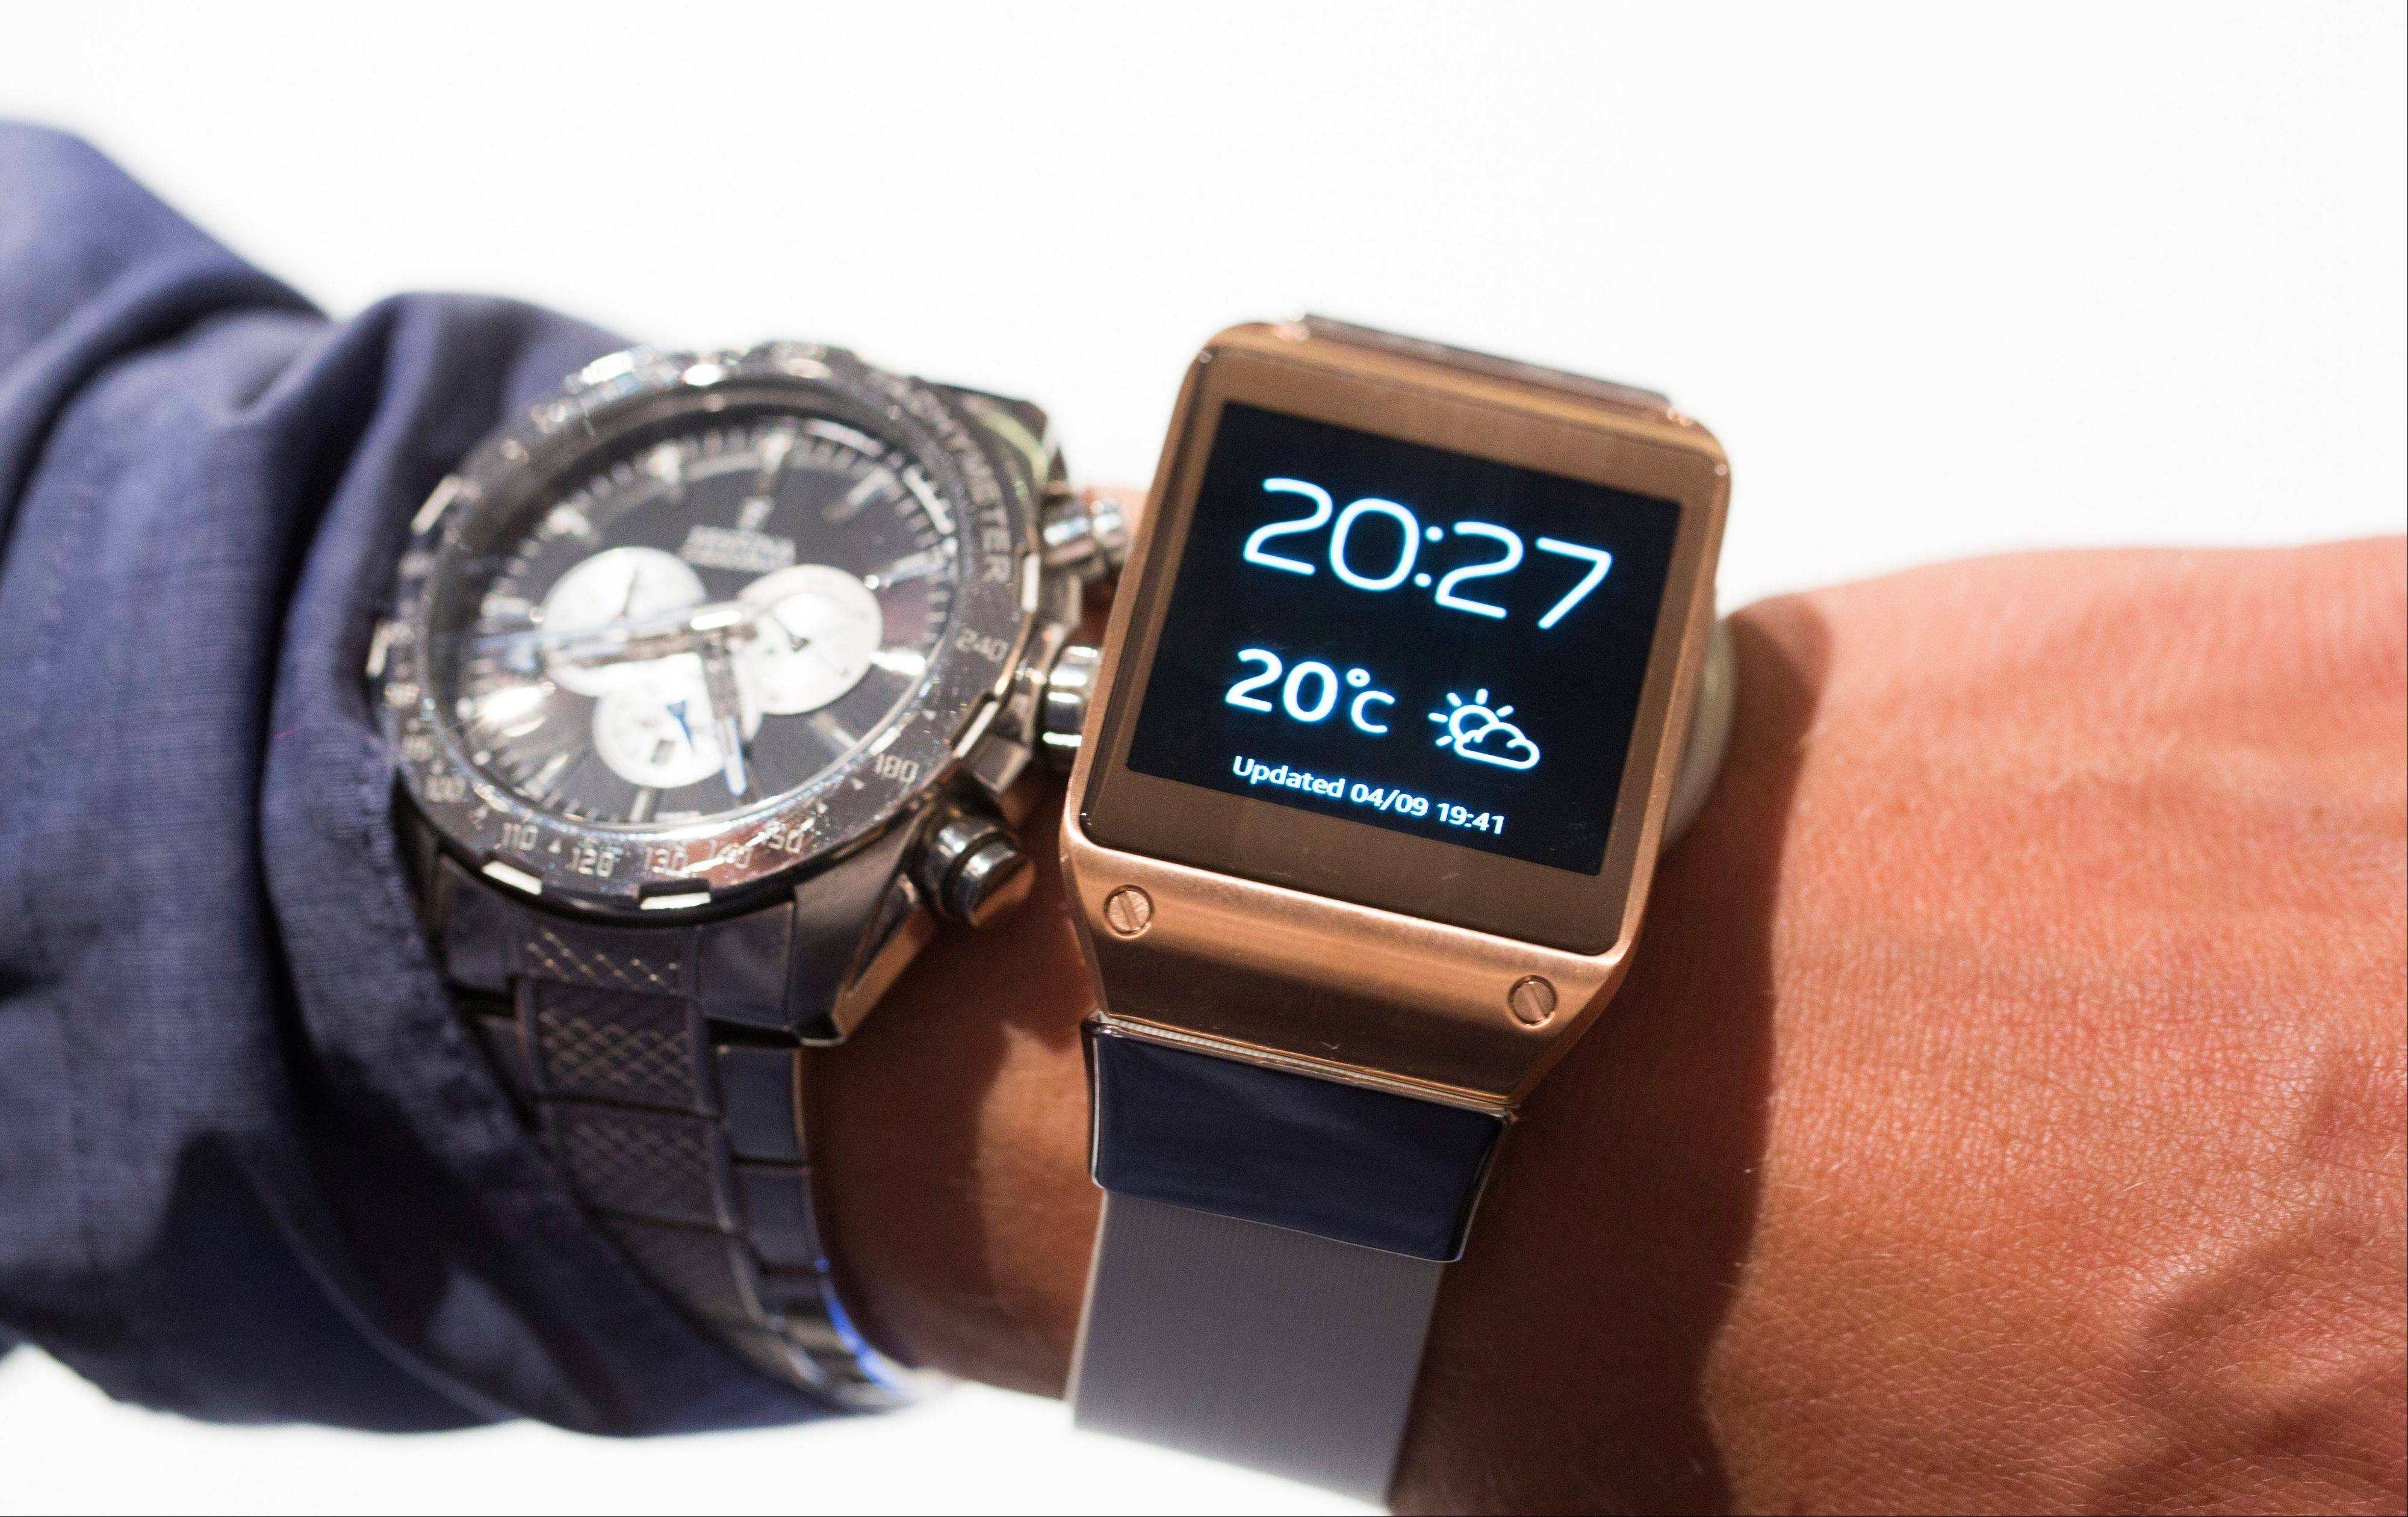 A man tries a Samsung Galaxy Gear, right, next to his regular watch Wednesday after the presentation in Berlin, Germany. Samsung has unveiled a highly anticipated digital wristwatch well ahead of a similar product expected from rival Apple. The so-called smartwatch is what some technology analysts believe could become this year's must-have holiday gift. Samsung unveiled the Galaxy Gear on Wednesday in Berlin ahead of the annual IFA consumer electronics show.